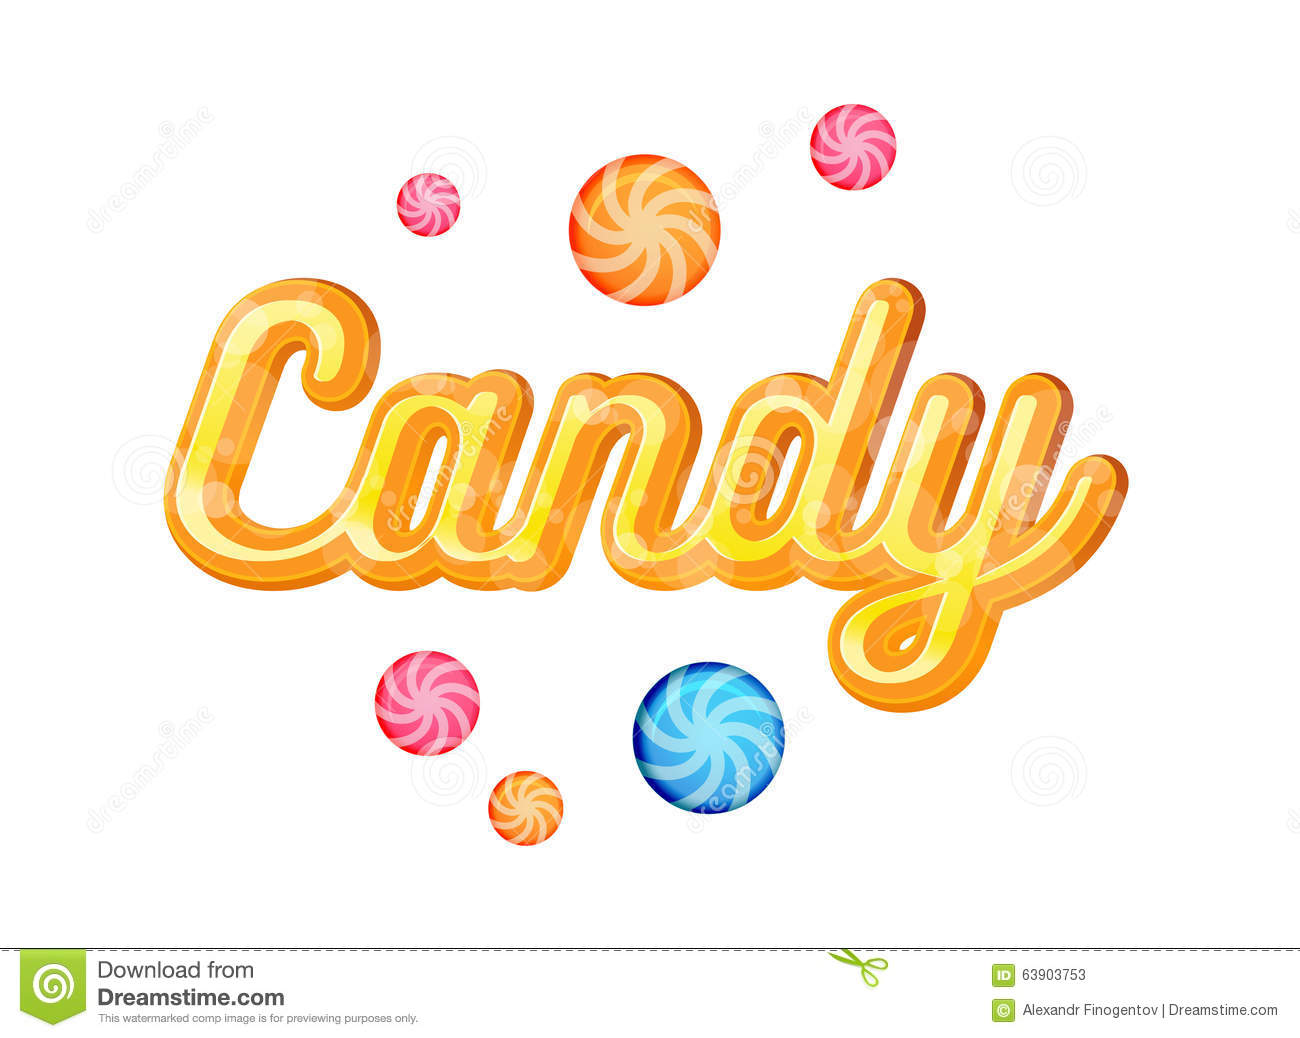 Yellow Candy Font Heading Vector For Posters Illustration